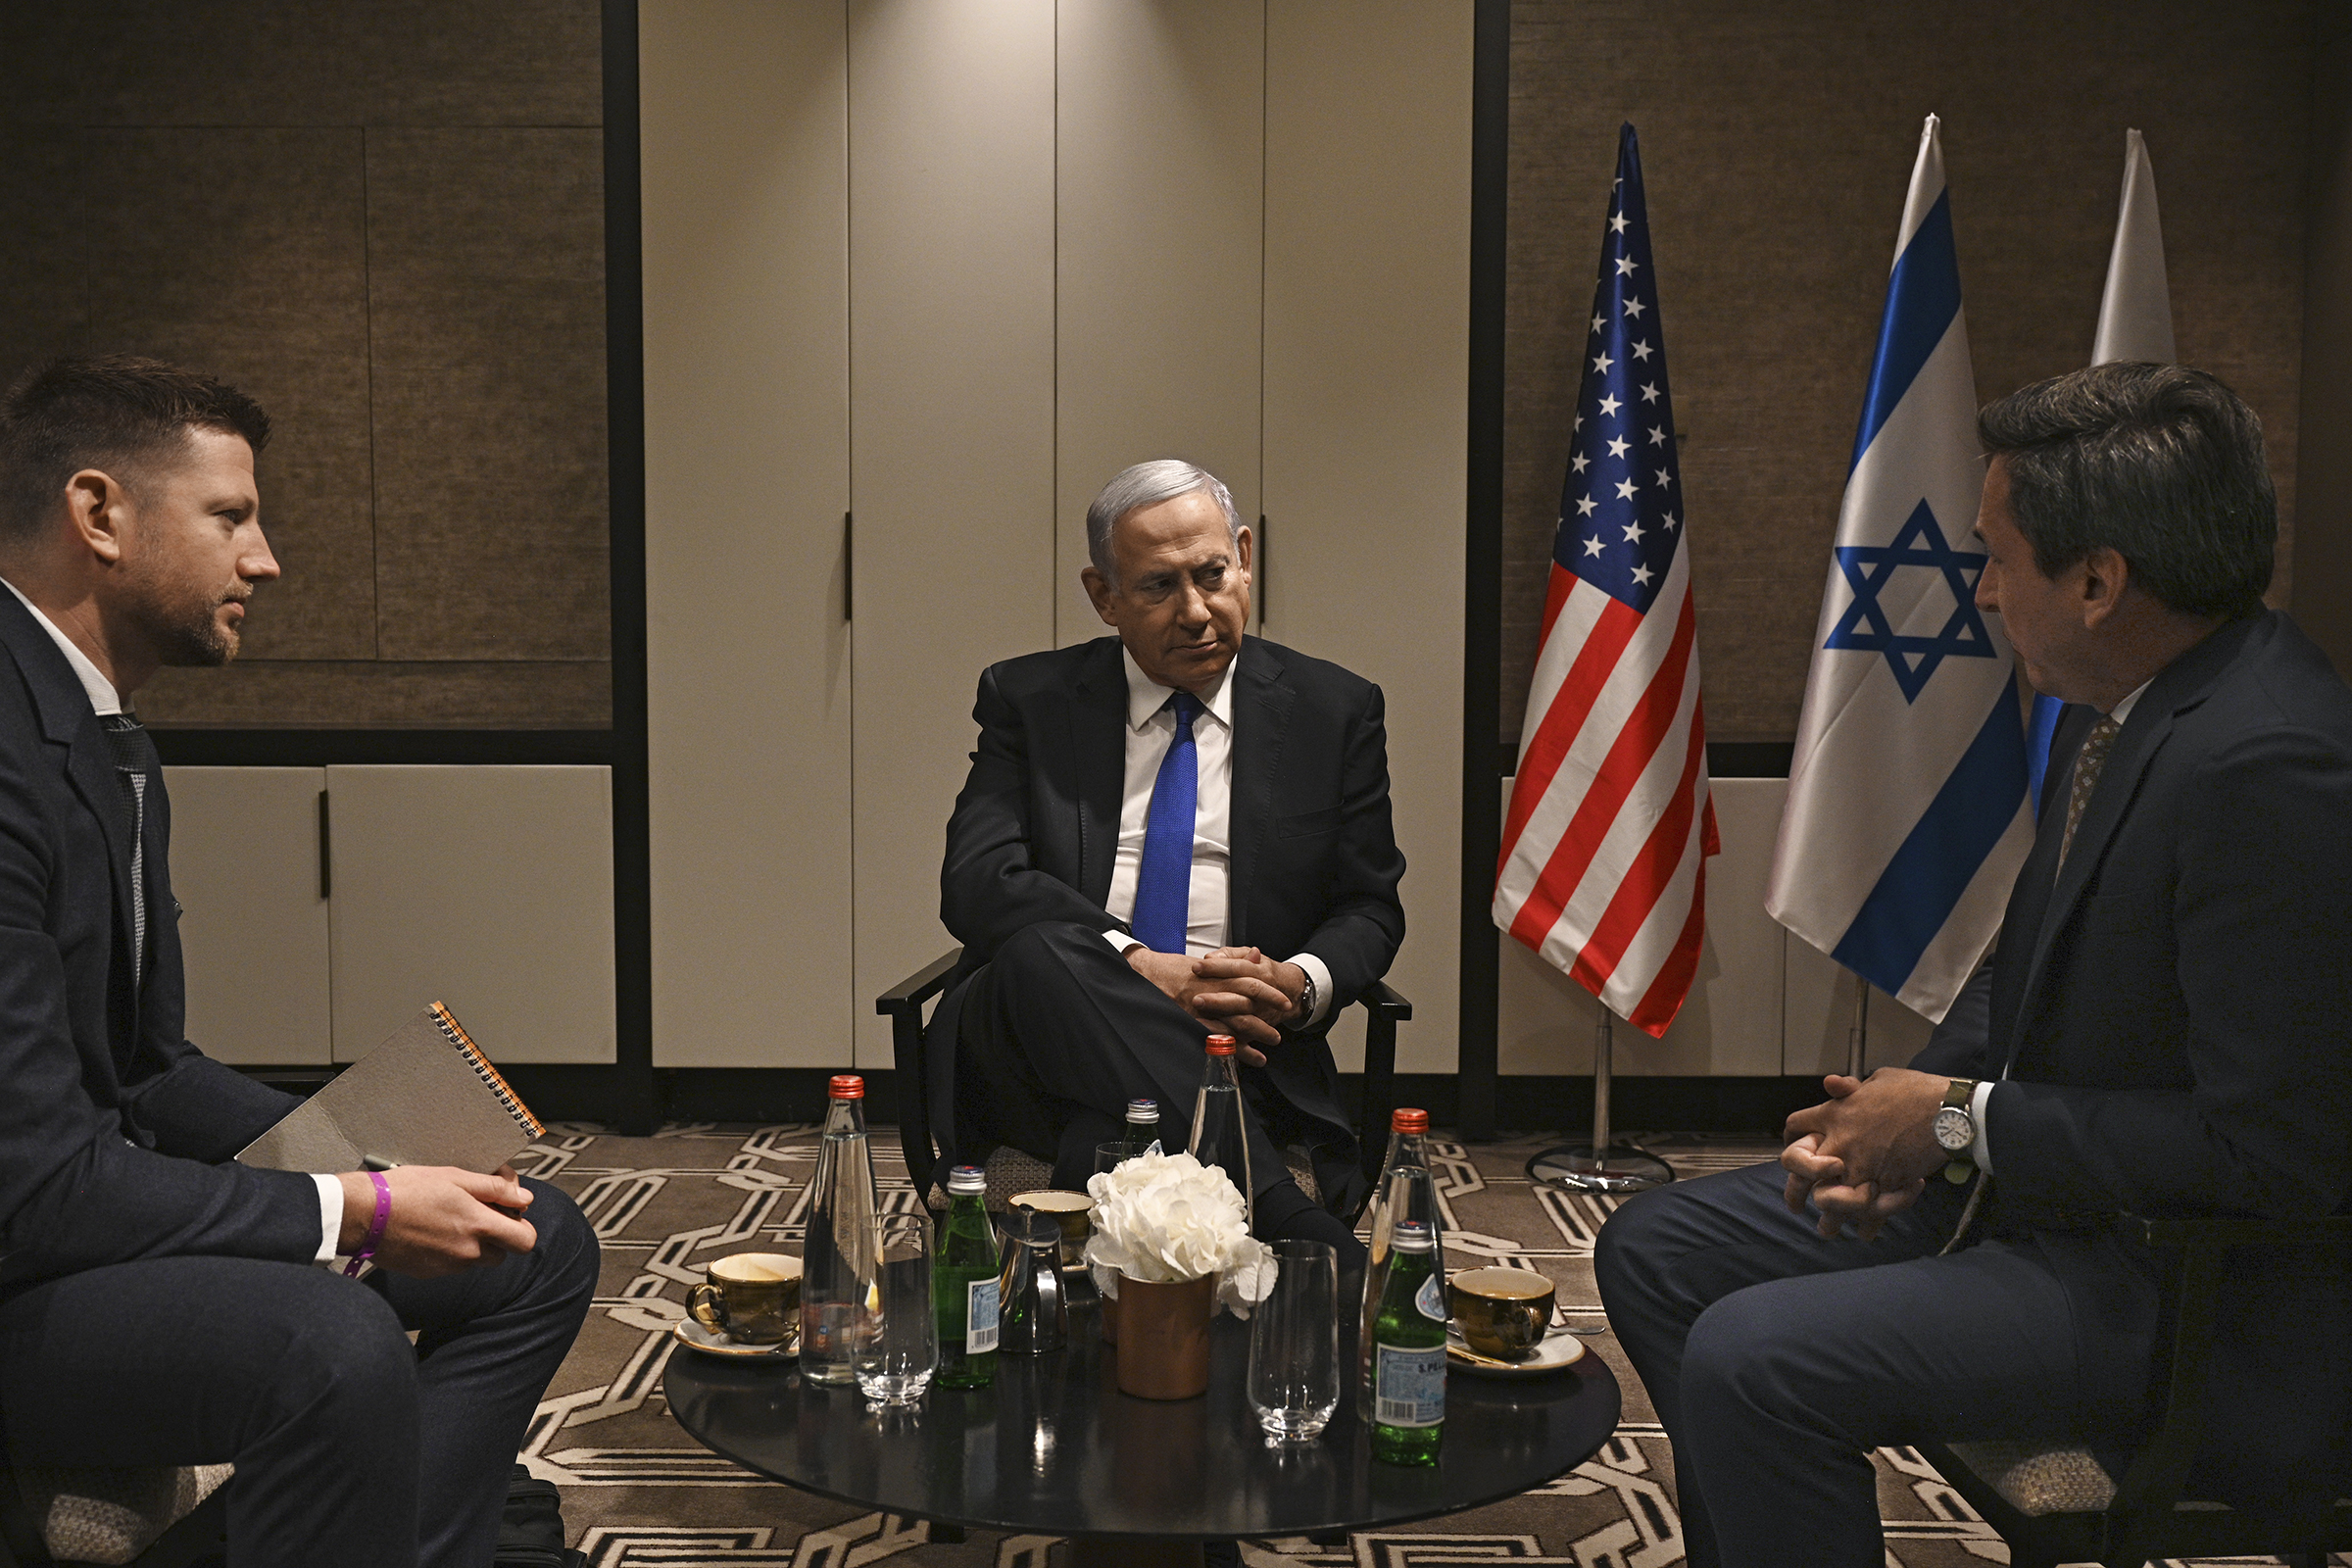 Prime Minister Benjamin Netanyahu spoke to TIME's Brian Bennett, right, and Joseph Hincks in Jerusalem on June 25.